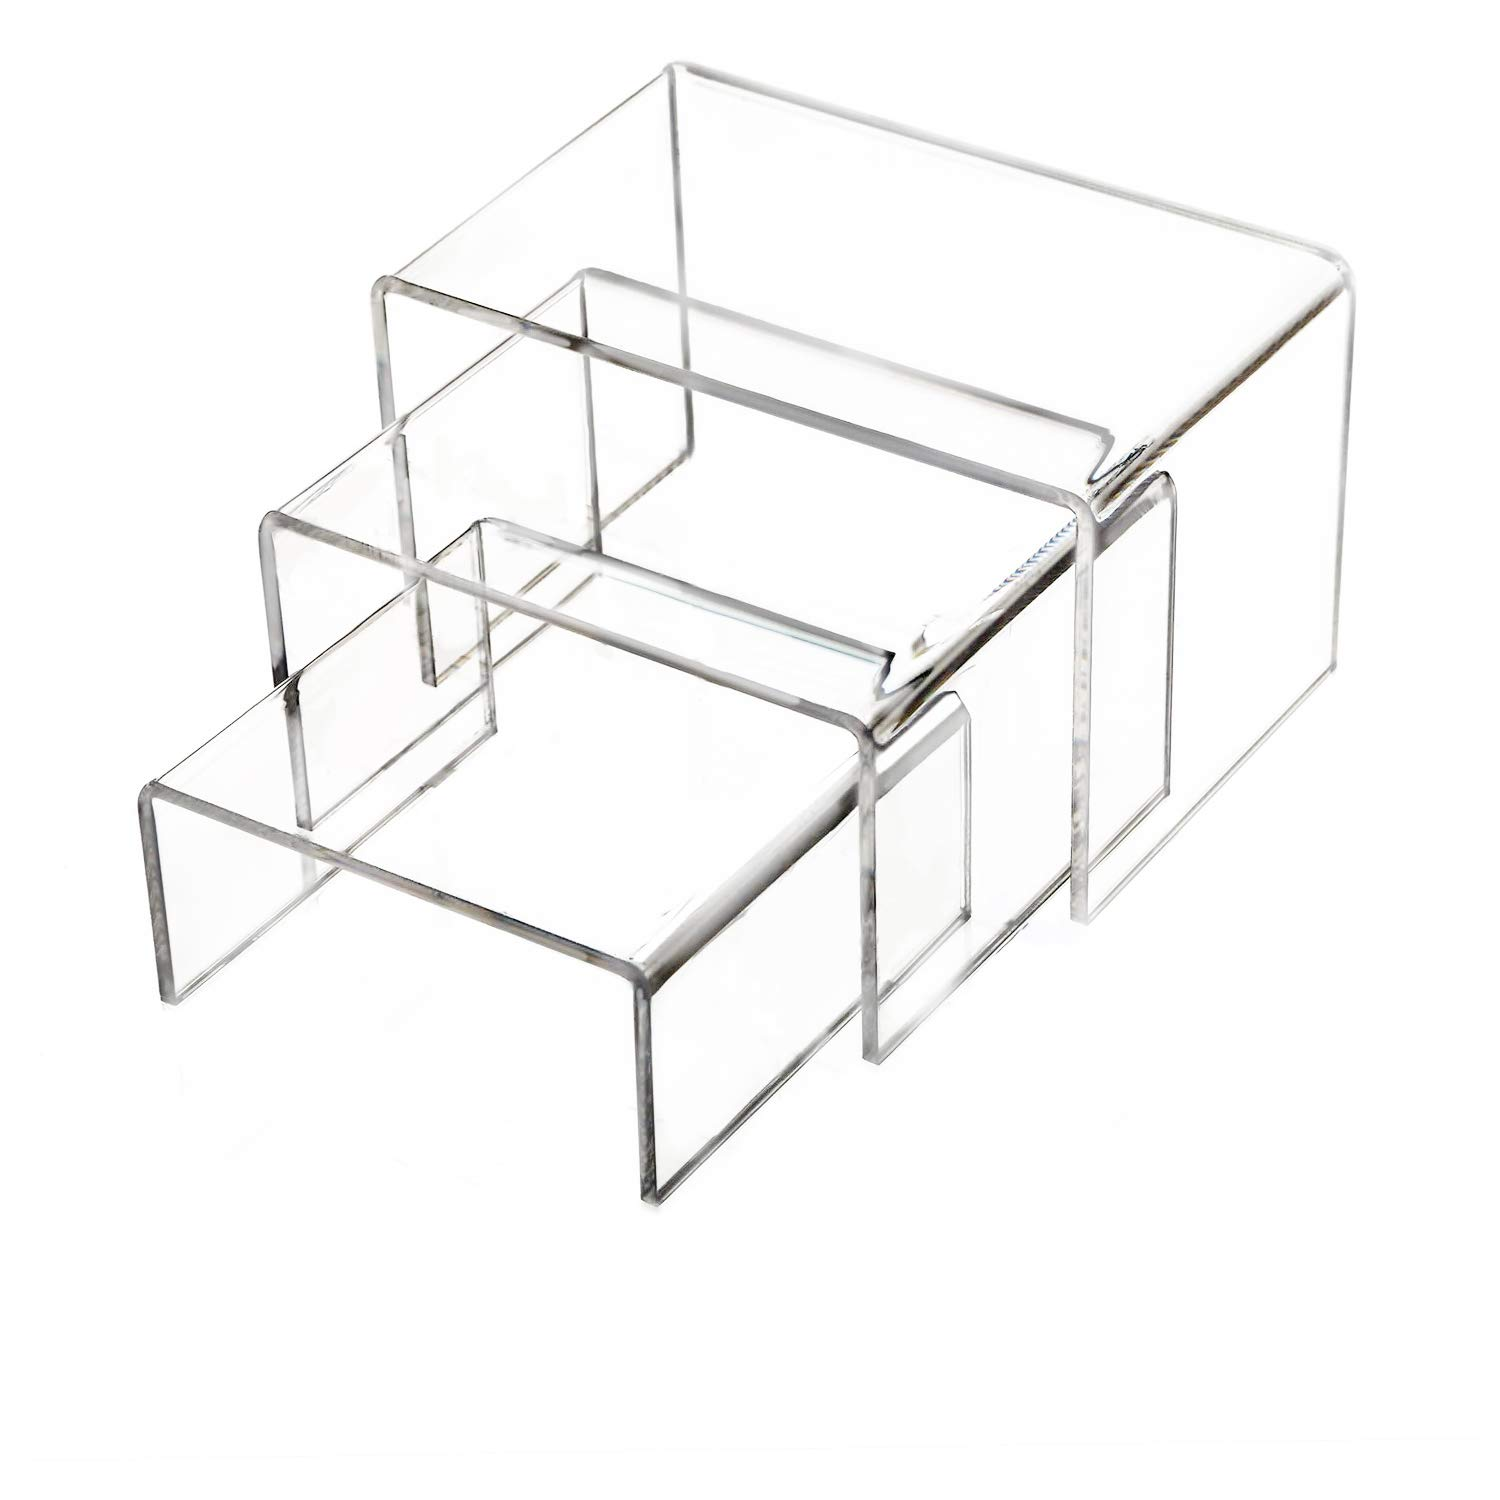 Square Riser Display Stand 5 x 5 x 5 clear acrylic Lot of 6